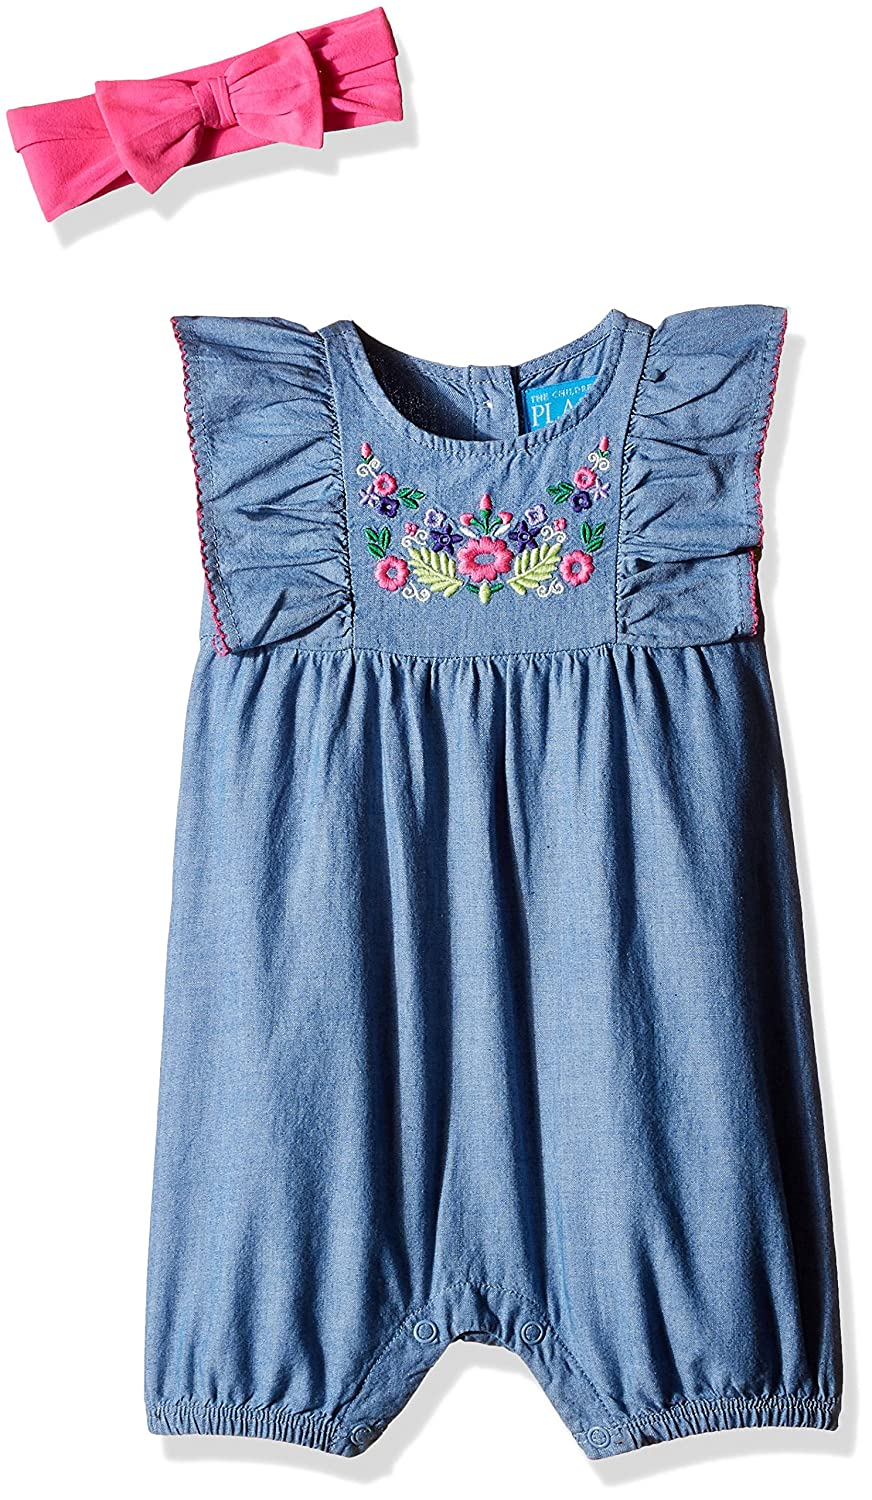 915007a31 The Children's Place Baby Girls' Short Flutter Sleeve Floral Stitch  Chambray Romper and Clothing Set (2060887_Chambray_12-18M): Amazon.in:  Clothing & ...